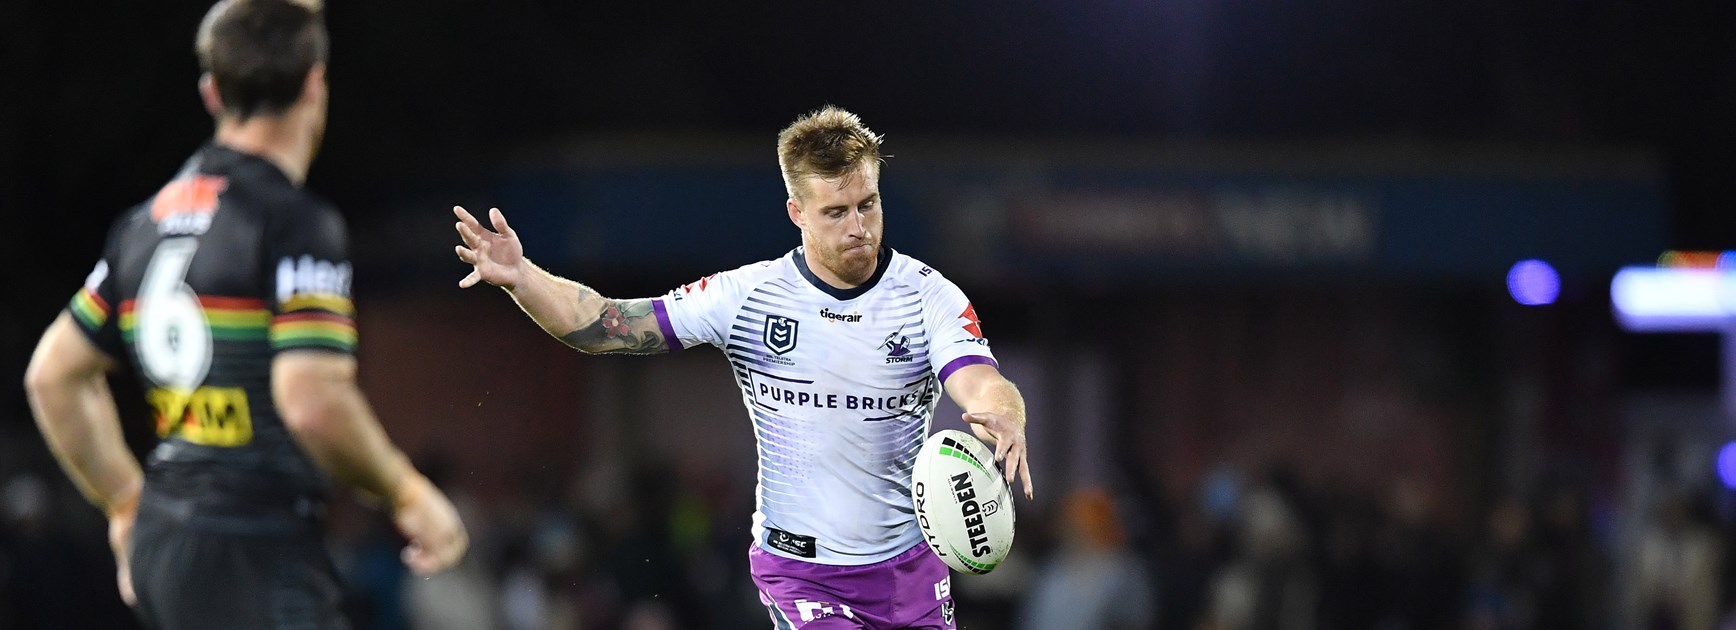 Strong second half sees Storm prevail